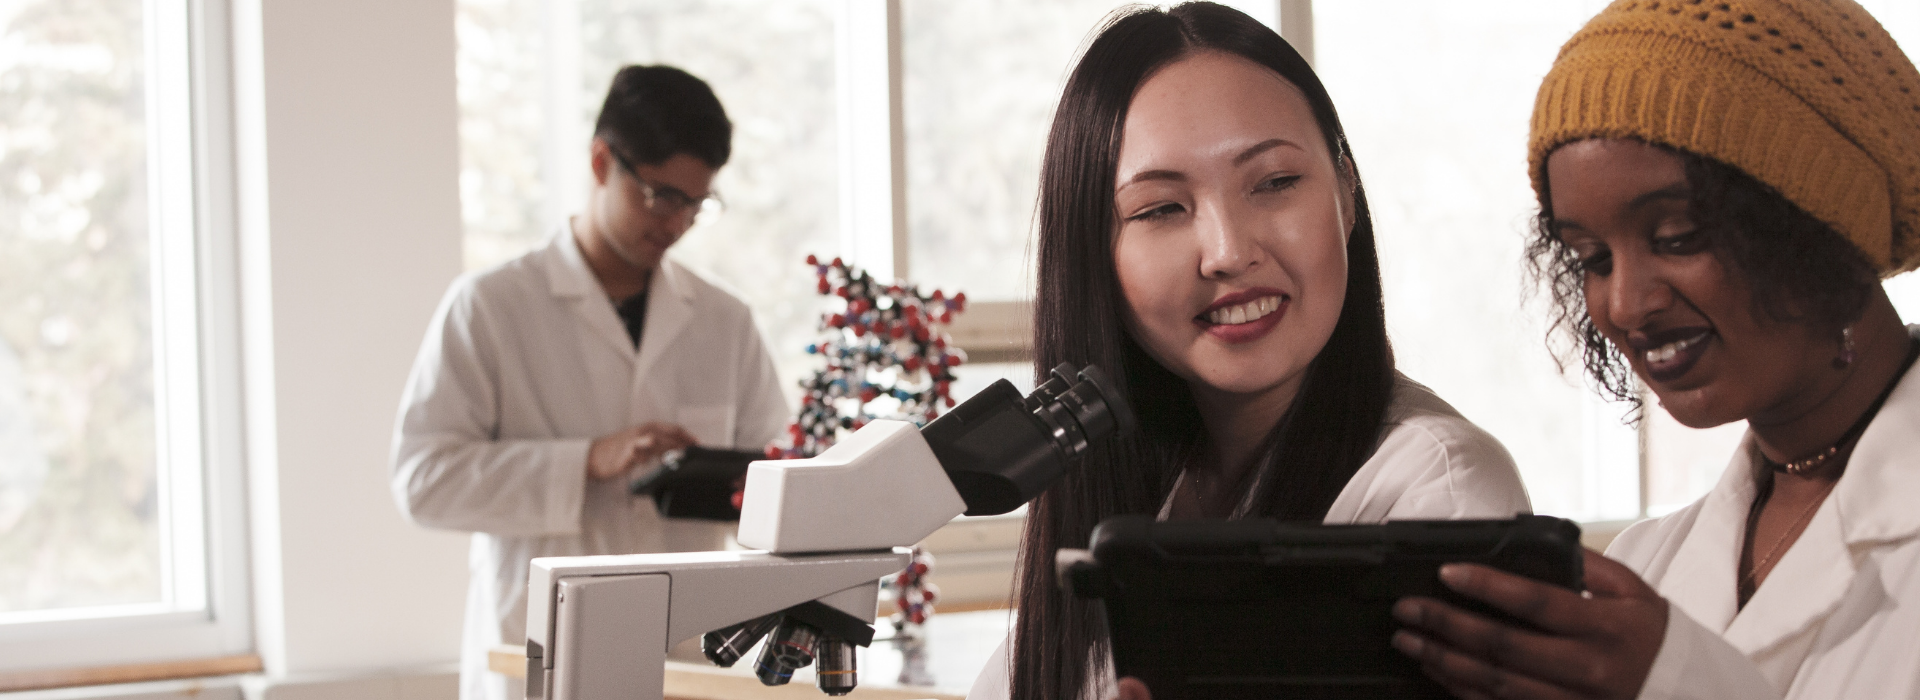 Two students in a CSJ laboratory in front of a microscope